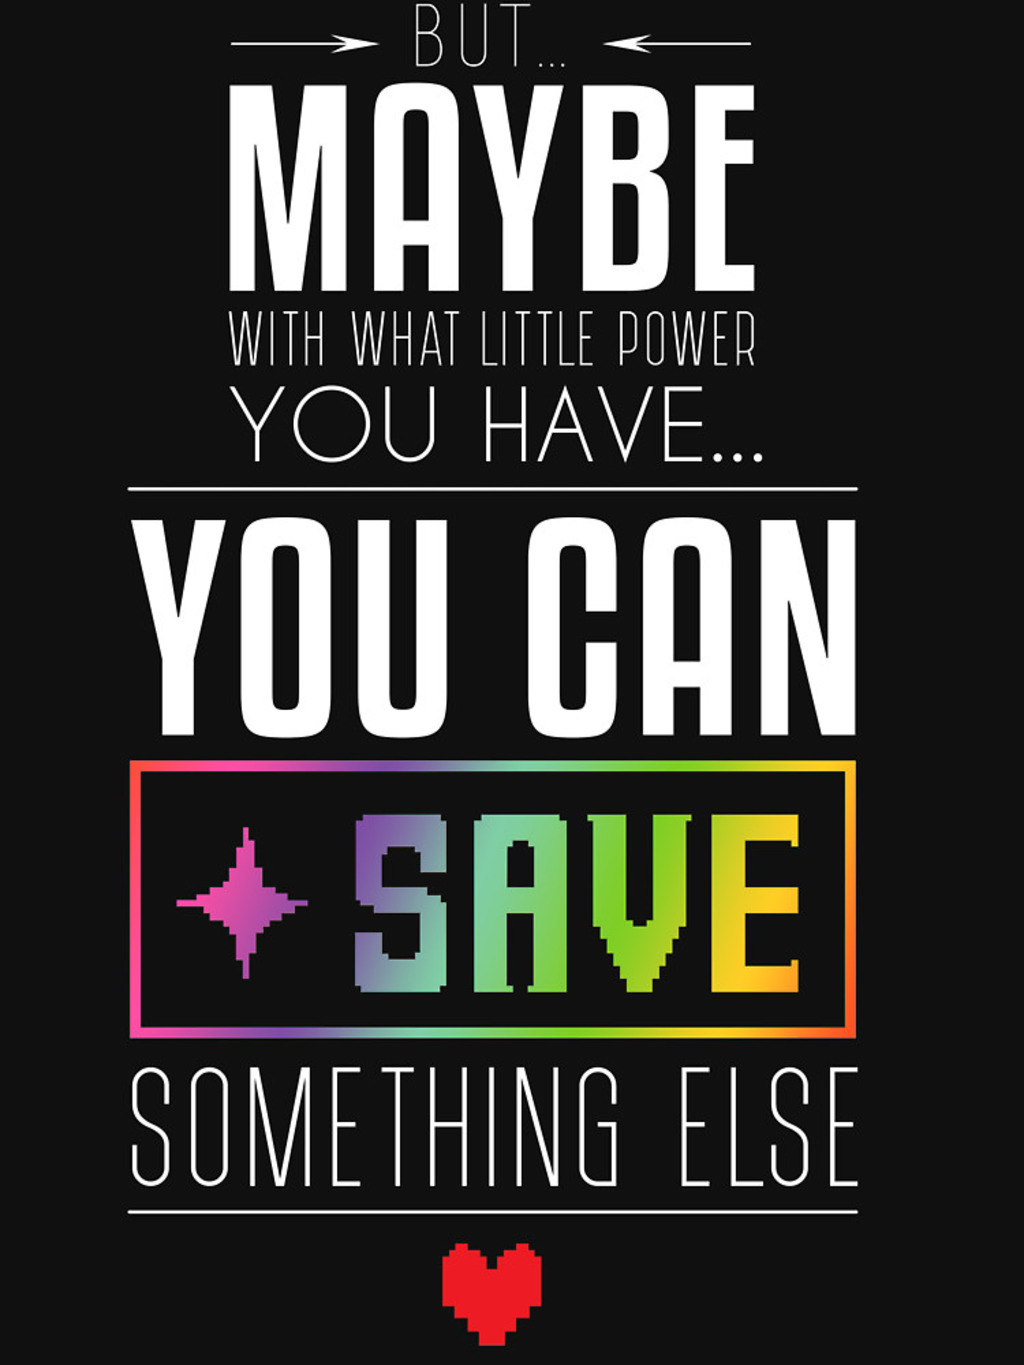 RedBubble: Maybe you can SAVE something else